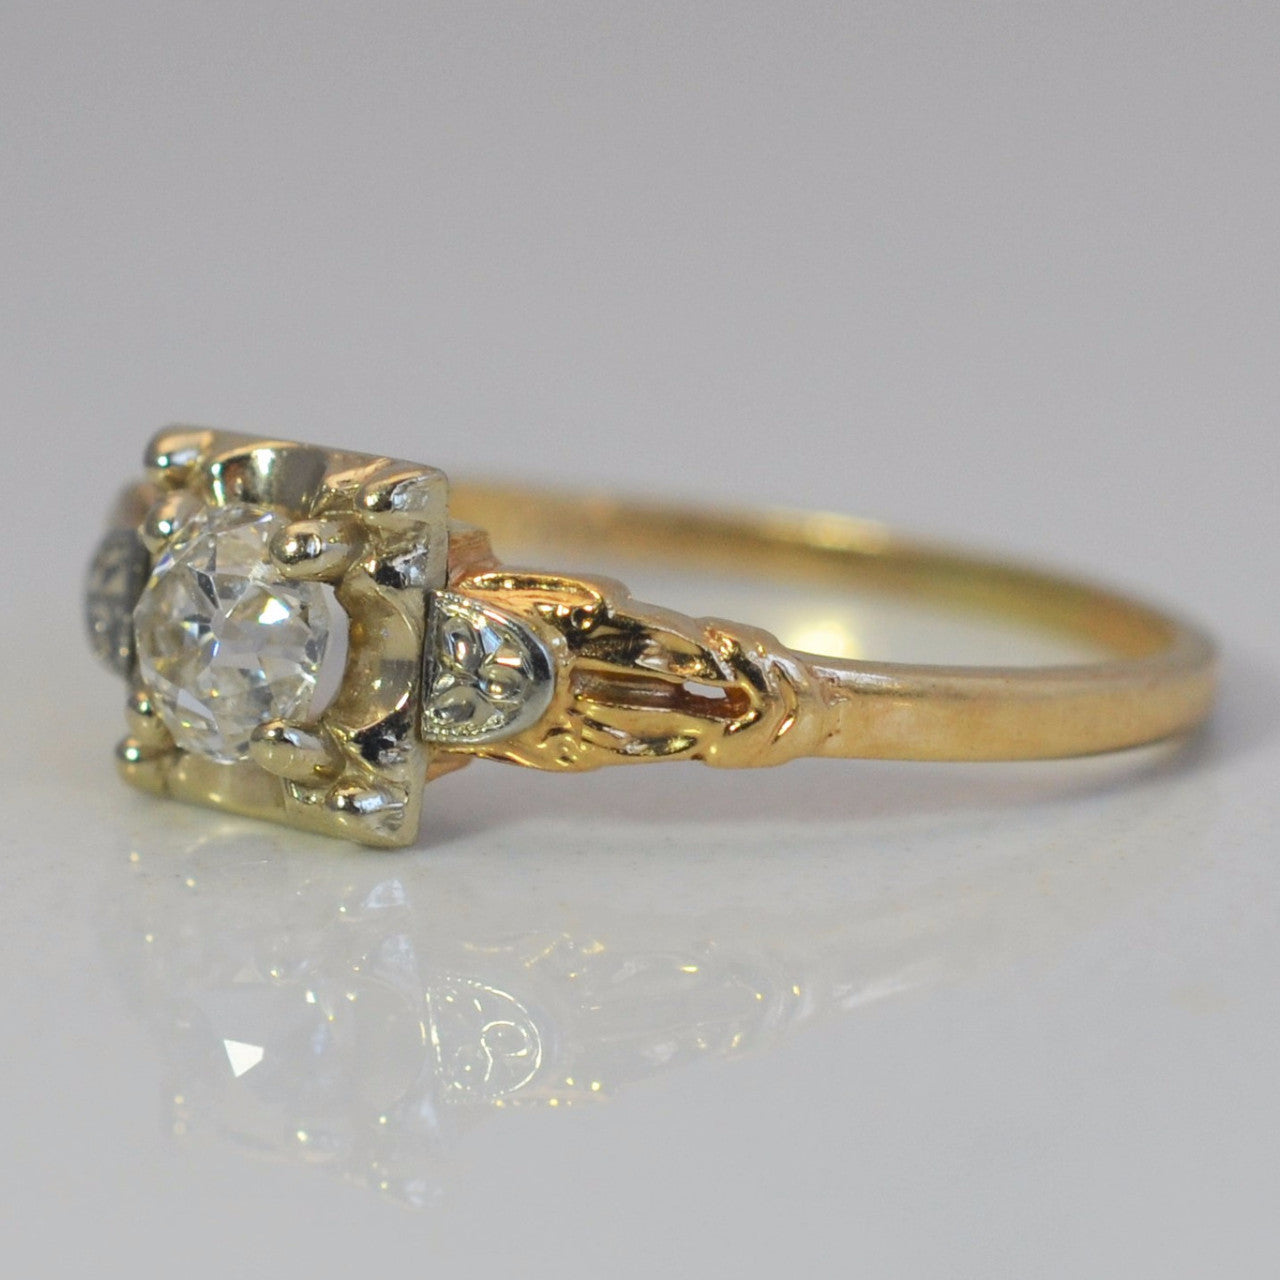 'Orange Blossom' Diamond Engagement Ring Circa 1930s | 0.37ct | SZ 7.75 |